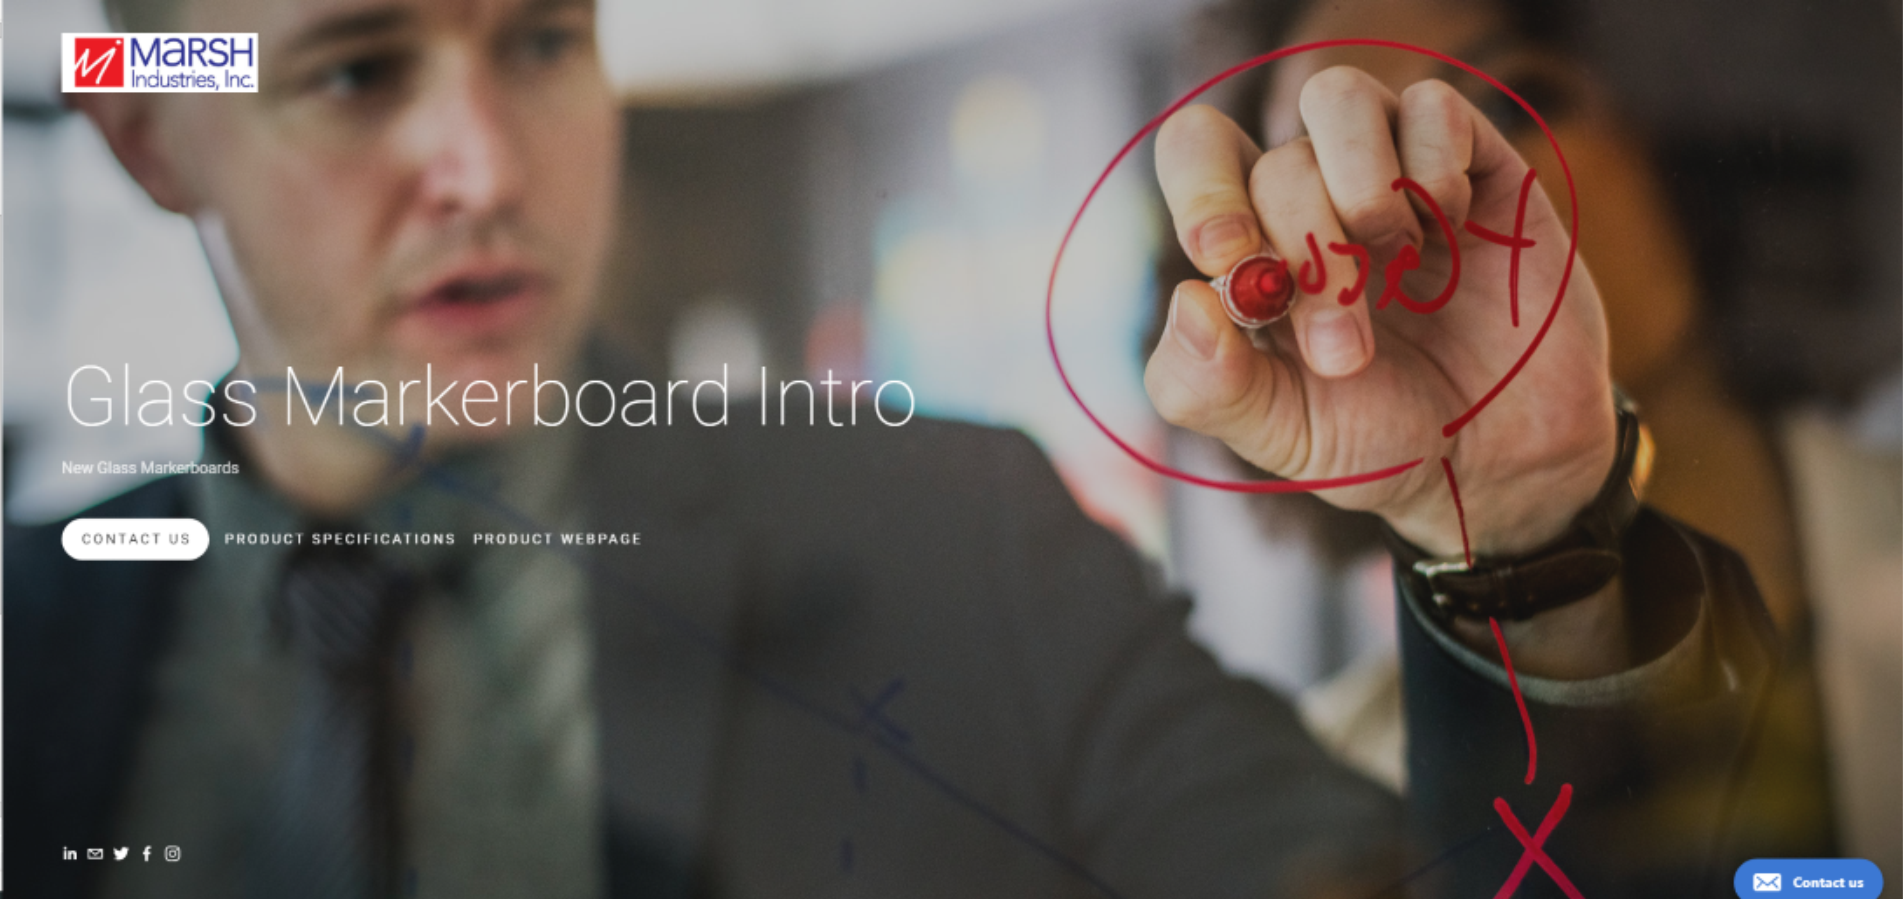 glass markerboard intro capture for website.png